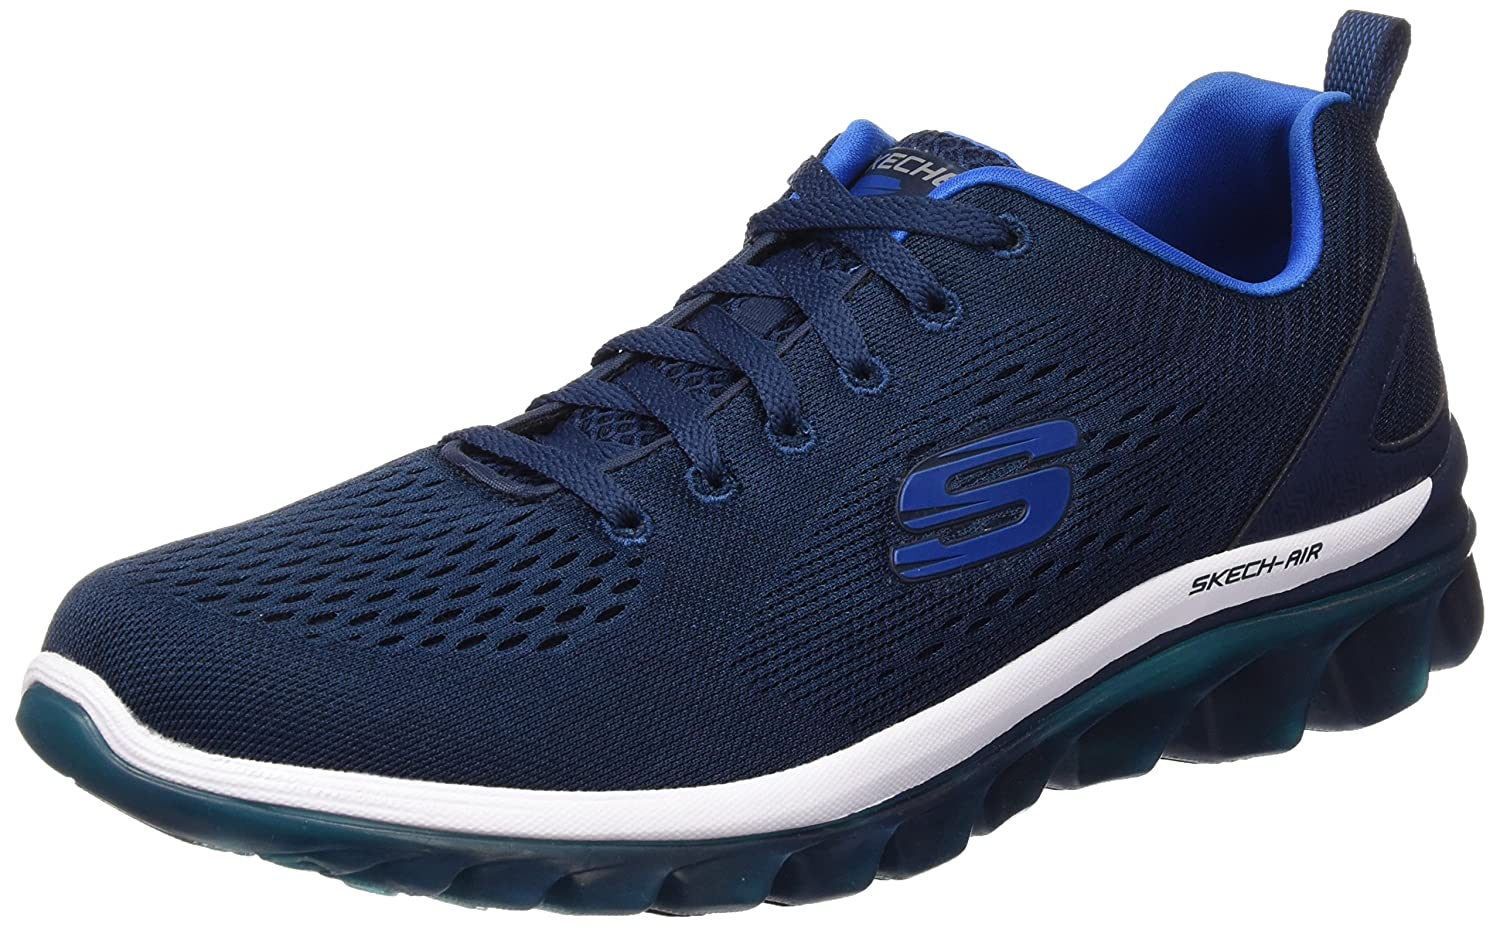 Skechers Herren Skech-air 2.0- Zero Gravity Turnschuhe